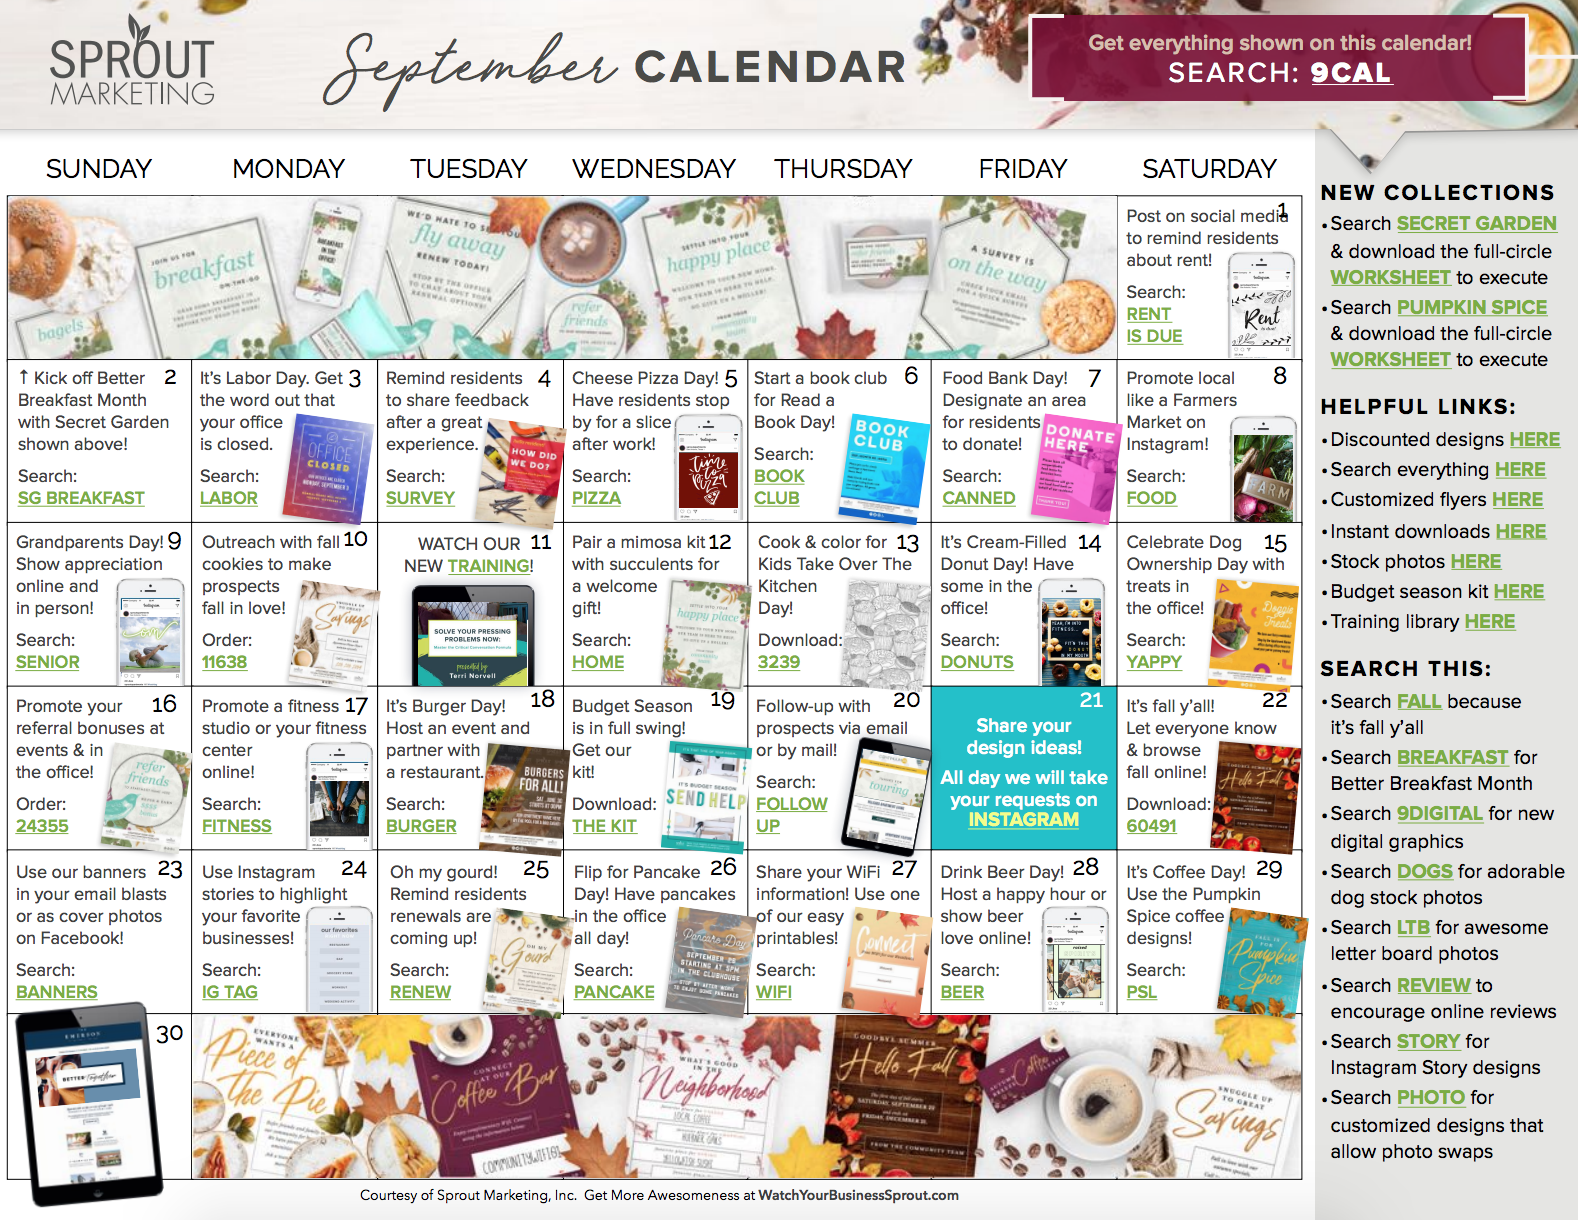 Your Monthly Marketing Calendar - No more having to come up with what to do for marketing, retention or social media each month. Follow our monthly marketing plan (with links to resources shown) and cover all of the essentials every month.Some plans just give you the ideas. We give you ideas, PLUS everything you need to make it happen.